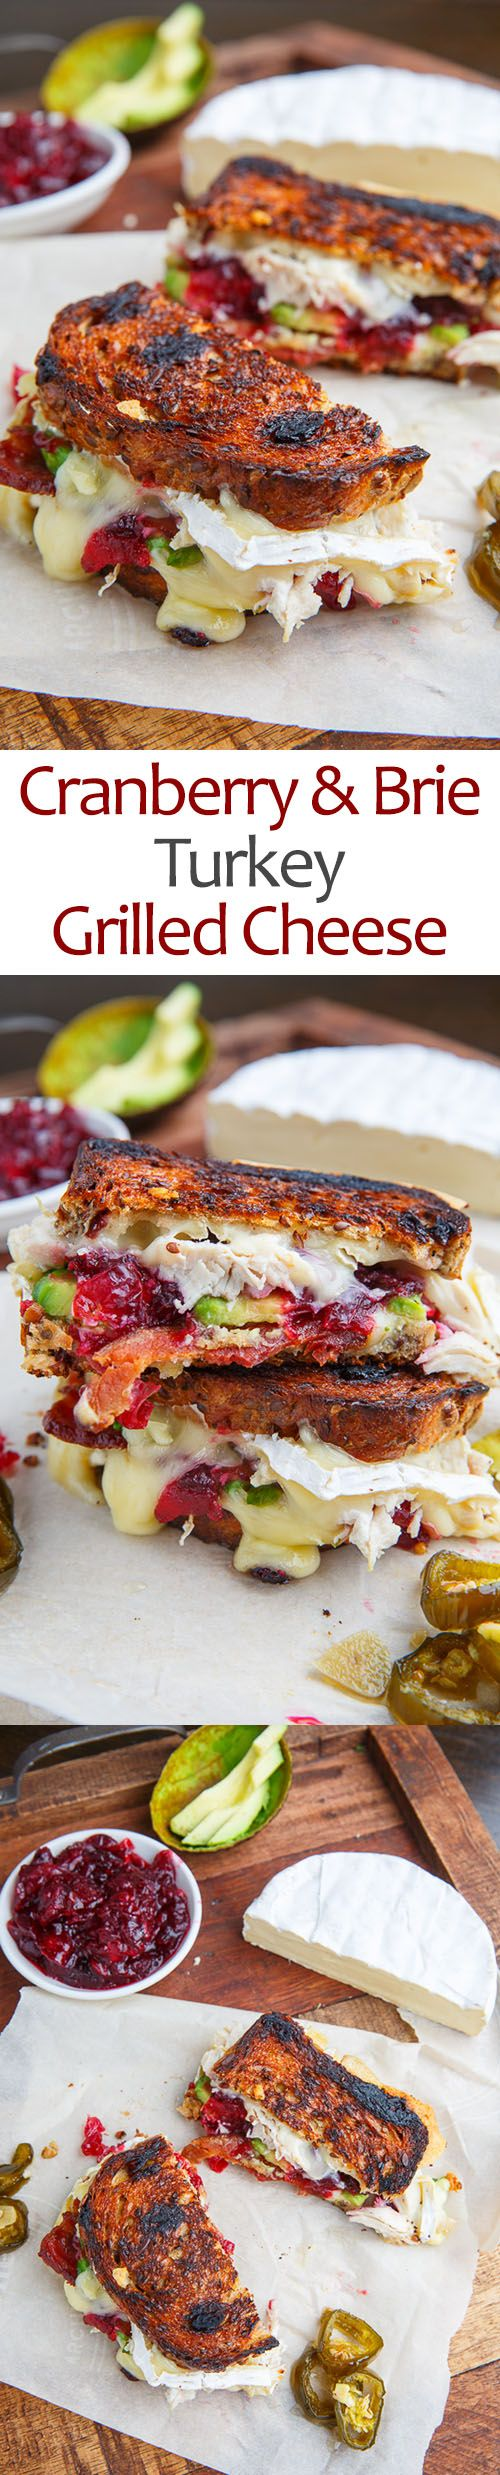 Cranberry and Brie Turkey Grilled Cheese with Avocado and Bacon                                                                                                                                                                                 More